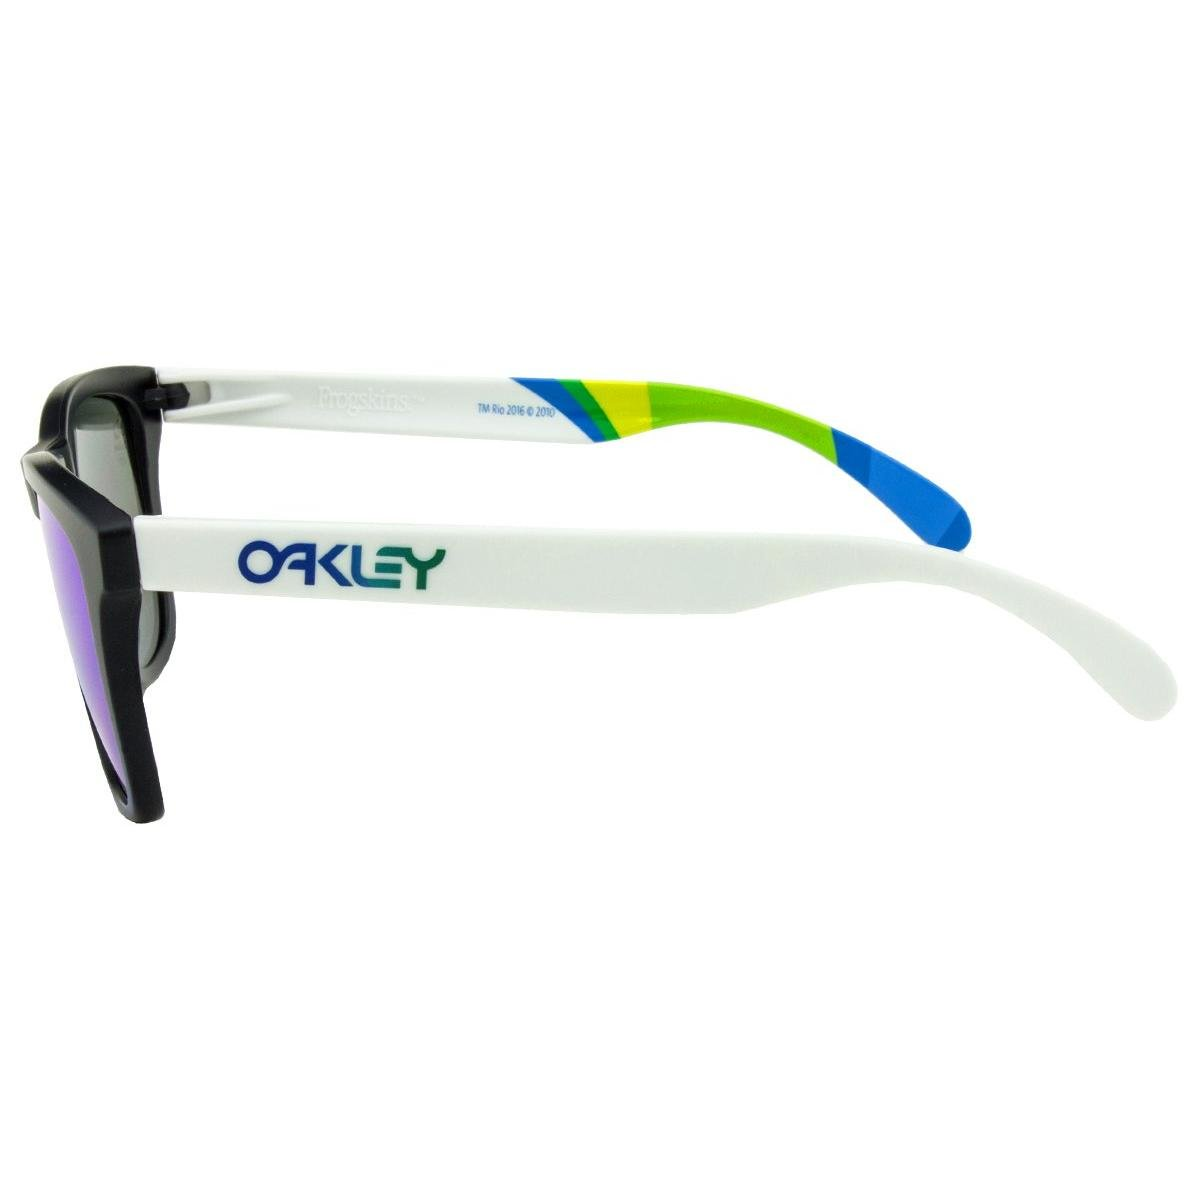 ... Óculos de Sol Oakley Frogskins OO9013 Brazil Olympics Collection -  Matte Black Matte White  ... fda3cbaf57